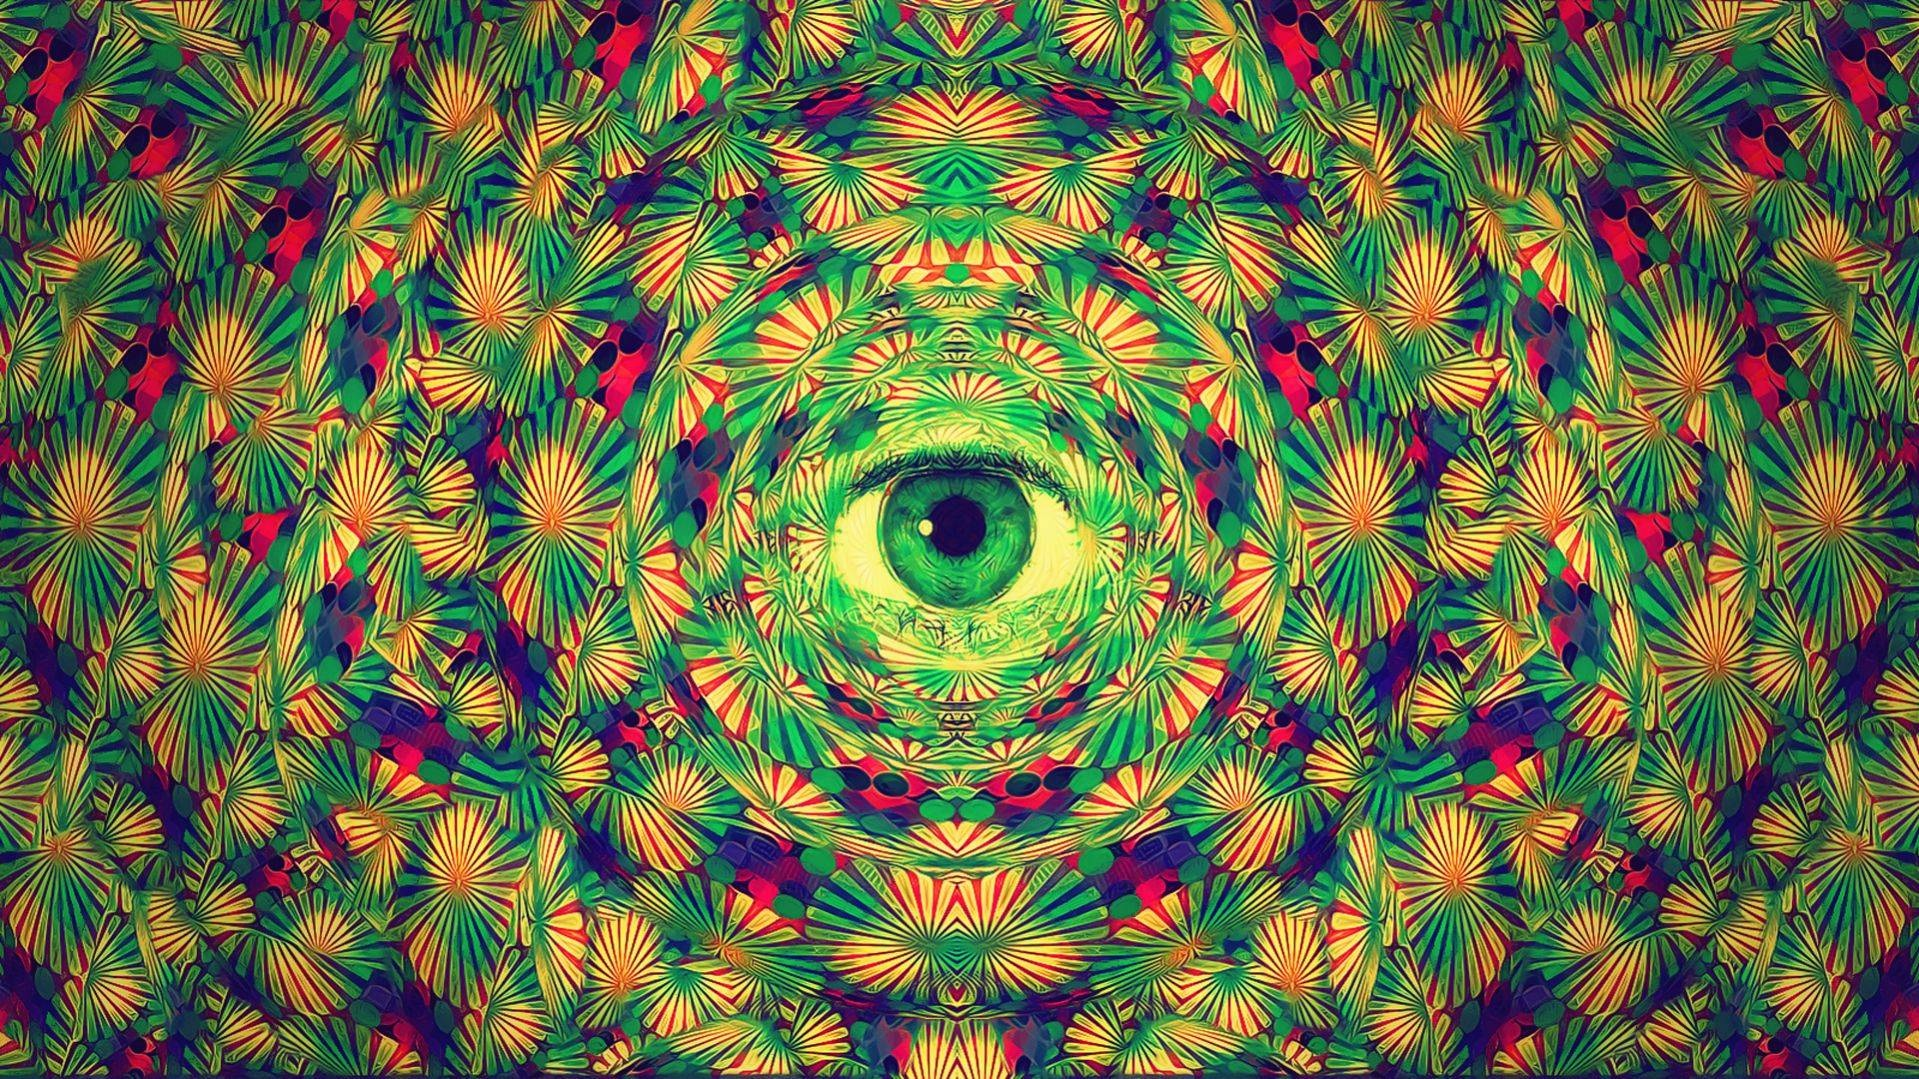 Trippy Wallpaper Images amp Pictures   Becuo 1919x1079